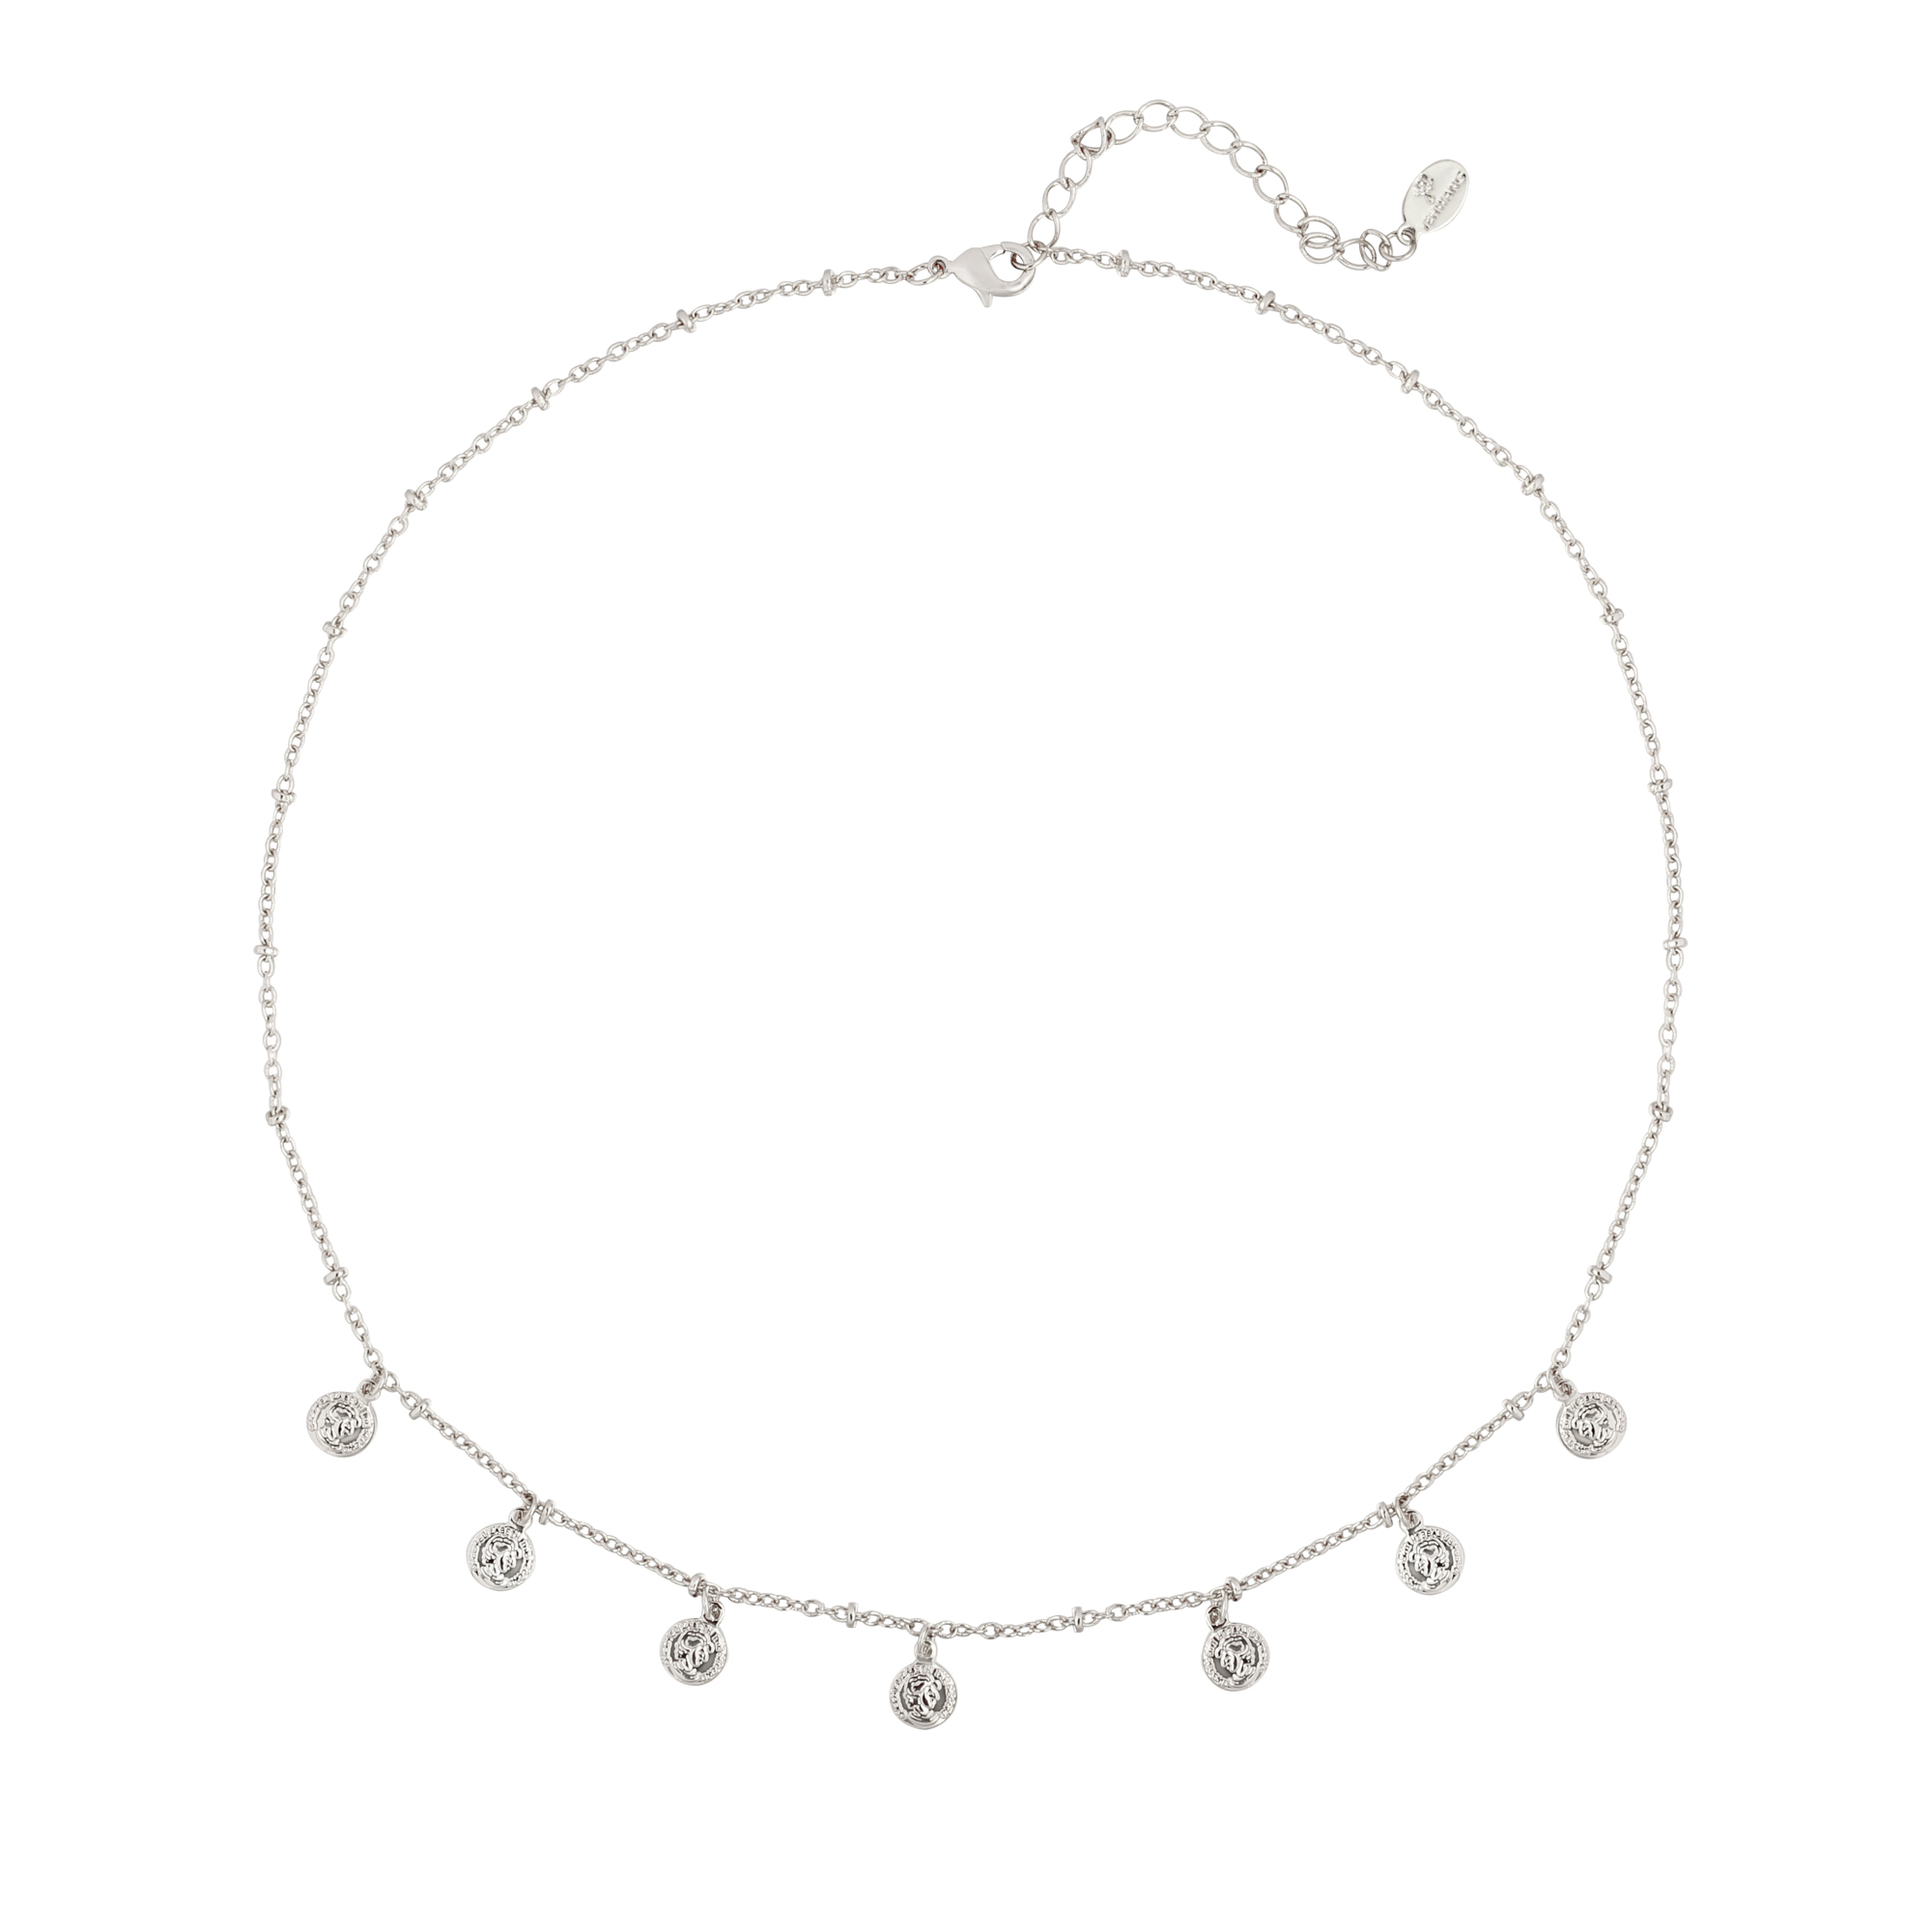 Ketting Cute Coin Zilver